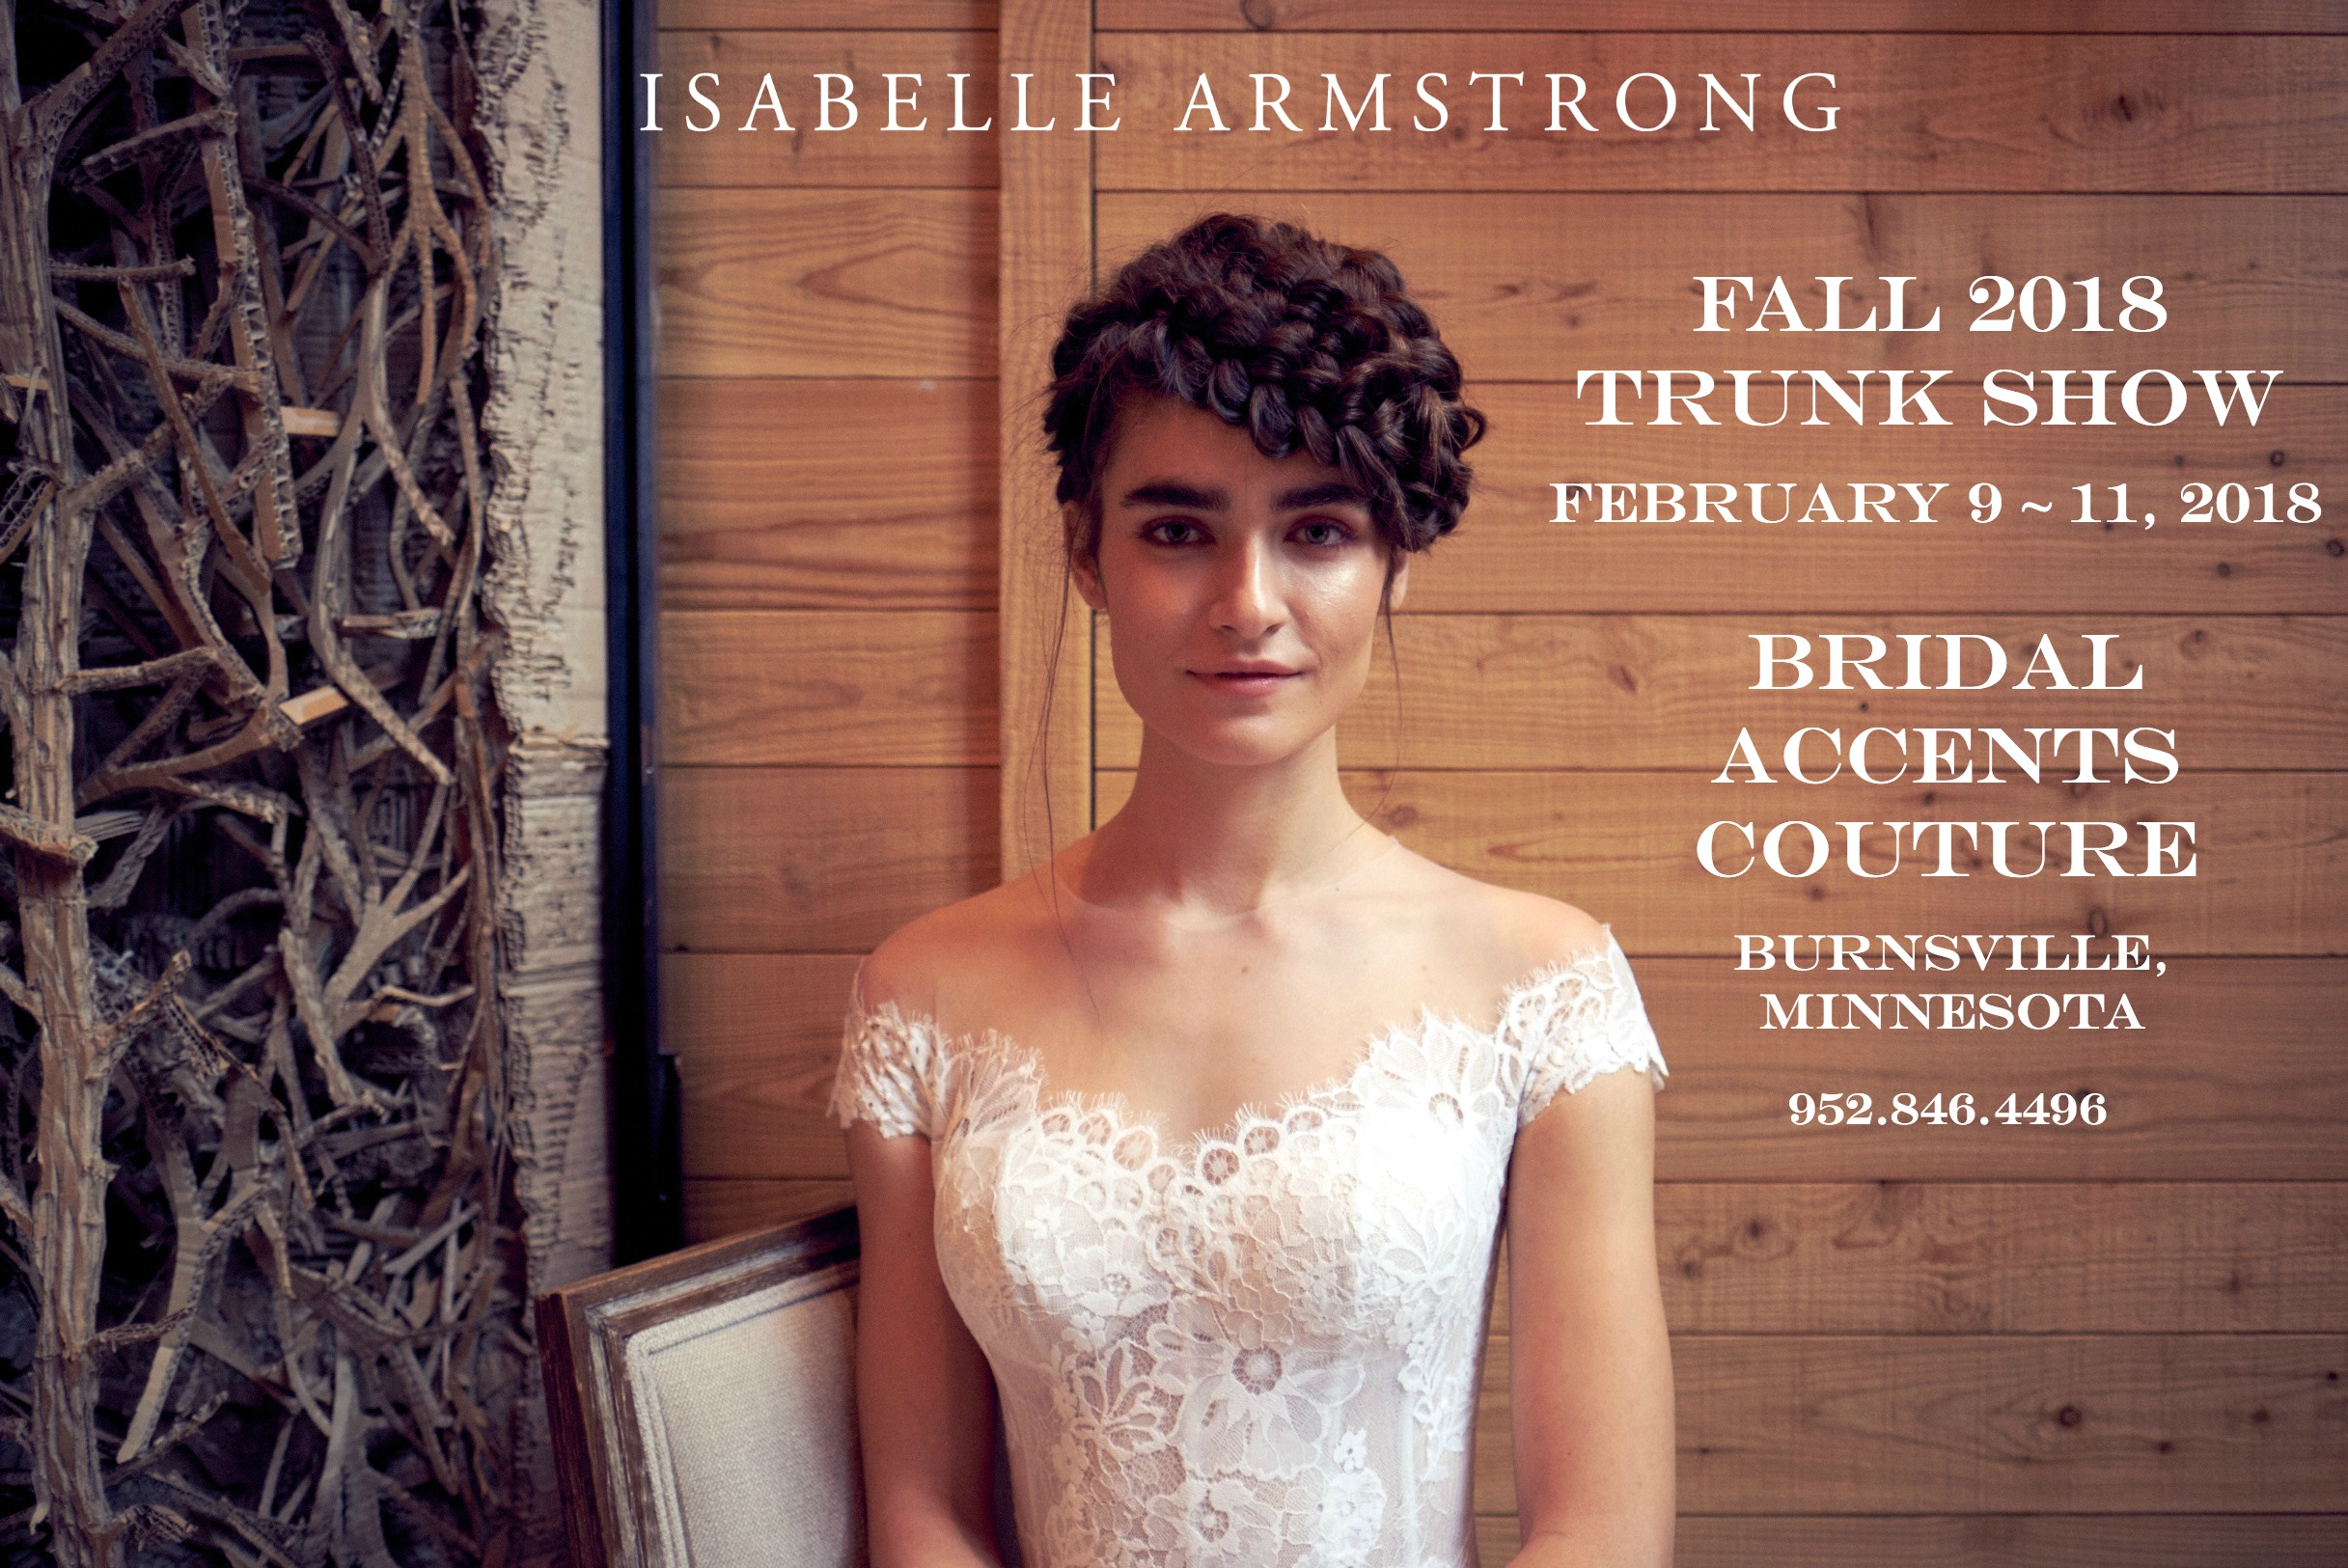 IA-BRIDAL ACCENTS COUTURE TS 2-9-18.jpg